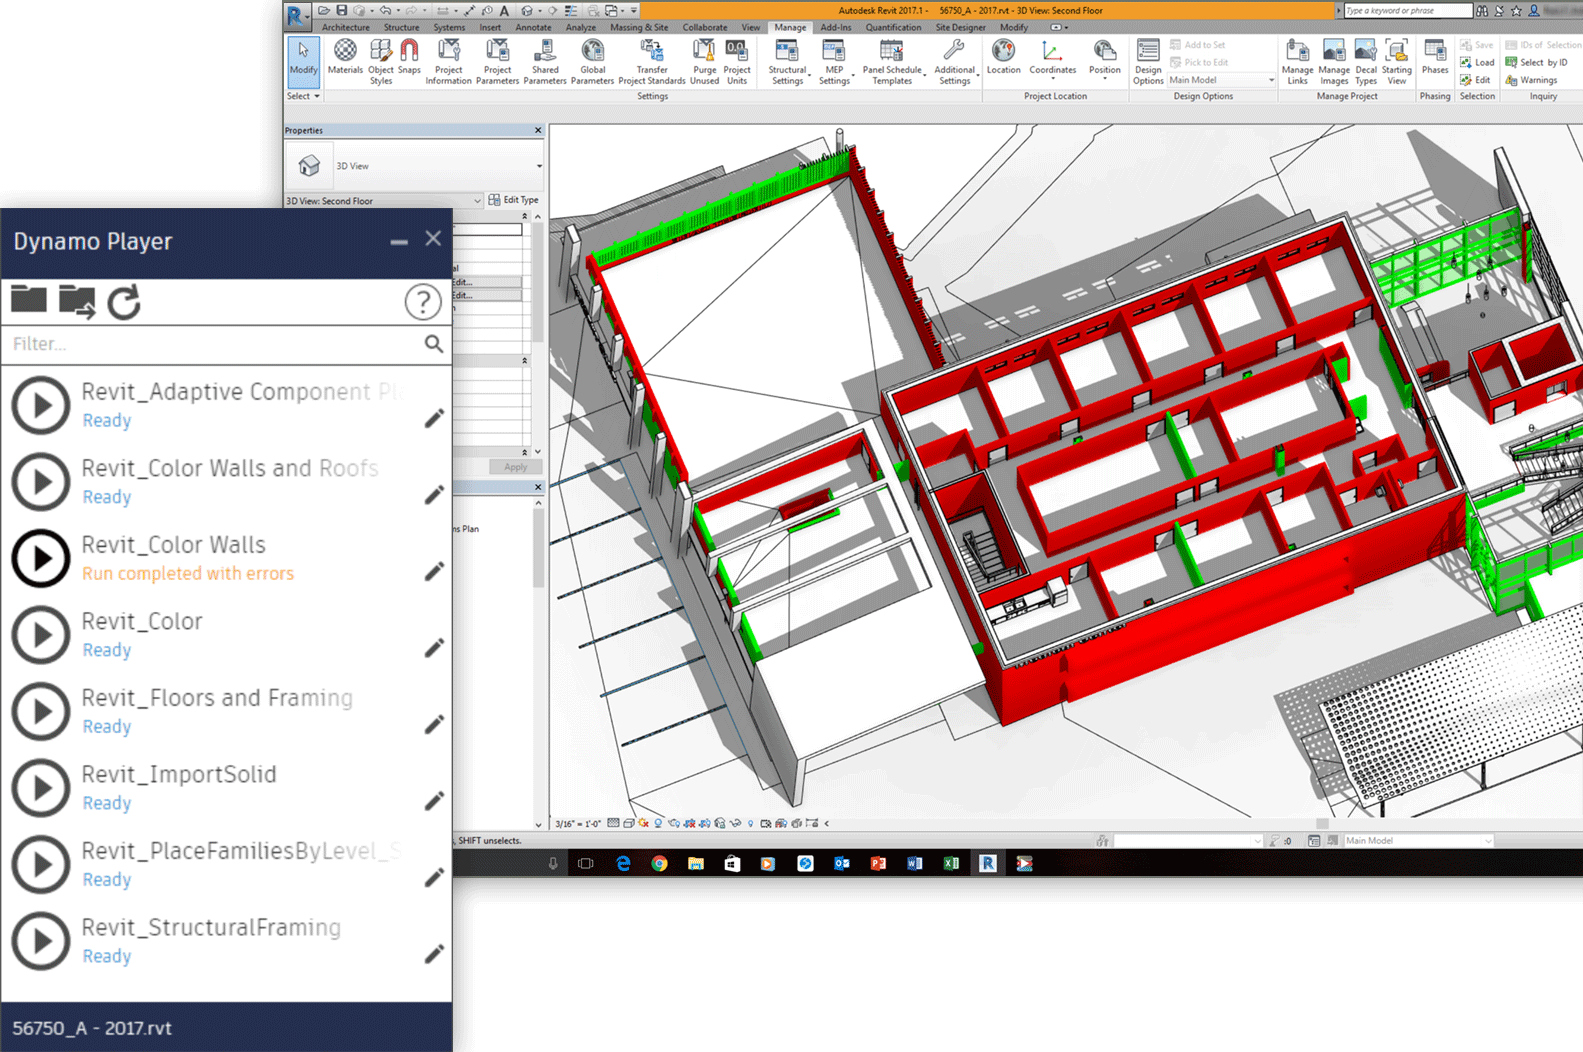 What's New in Revit 2017 | New Features | Autodesk